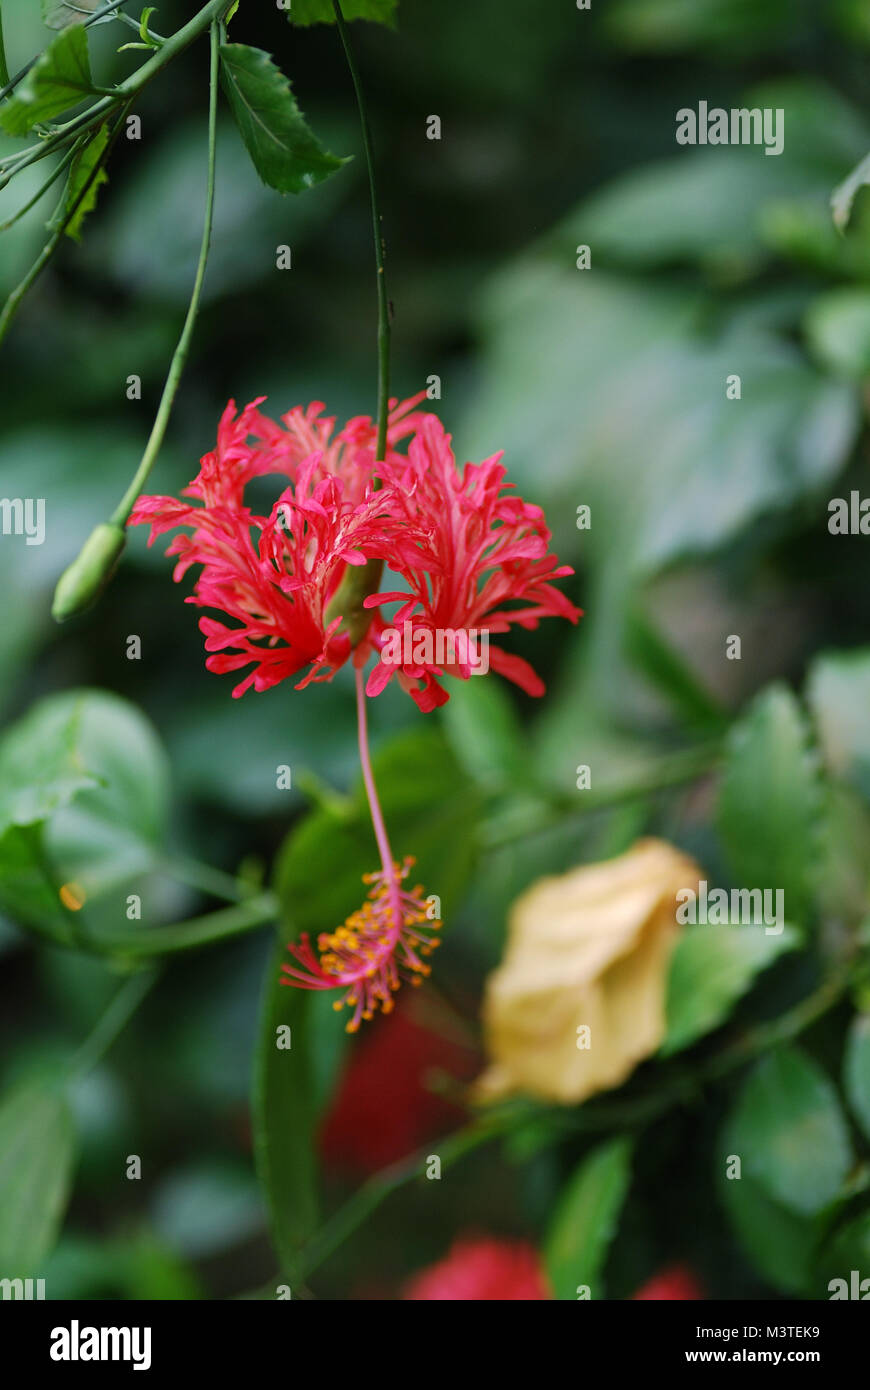 beautiful colorful red flower from the hochformat rainforest - Stock Image